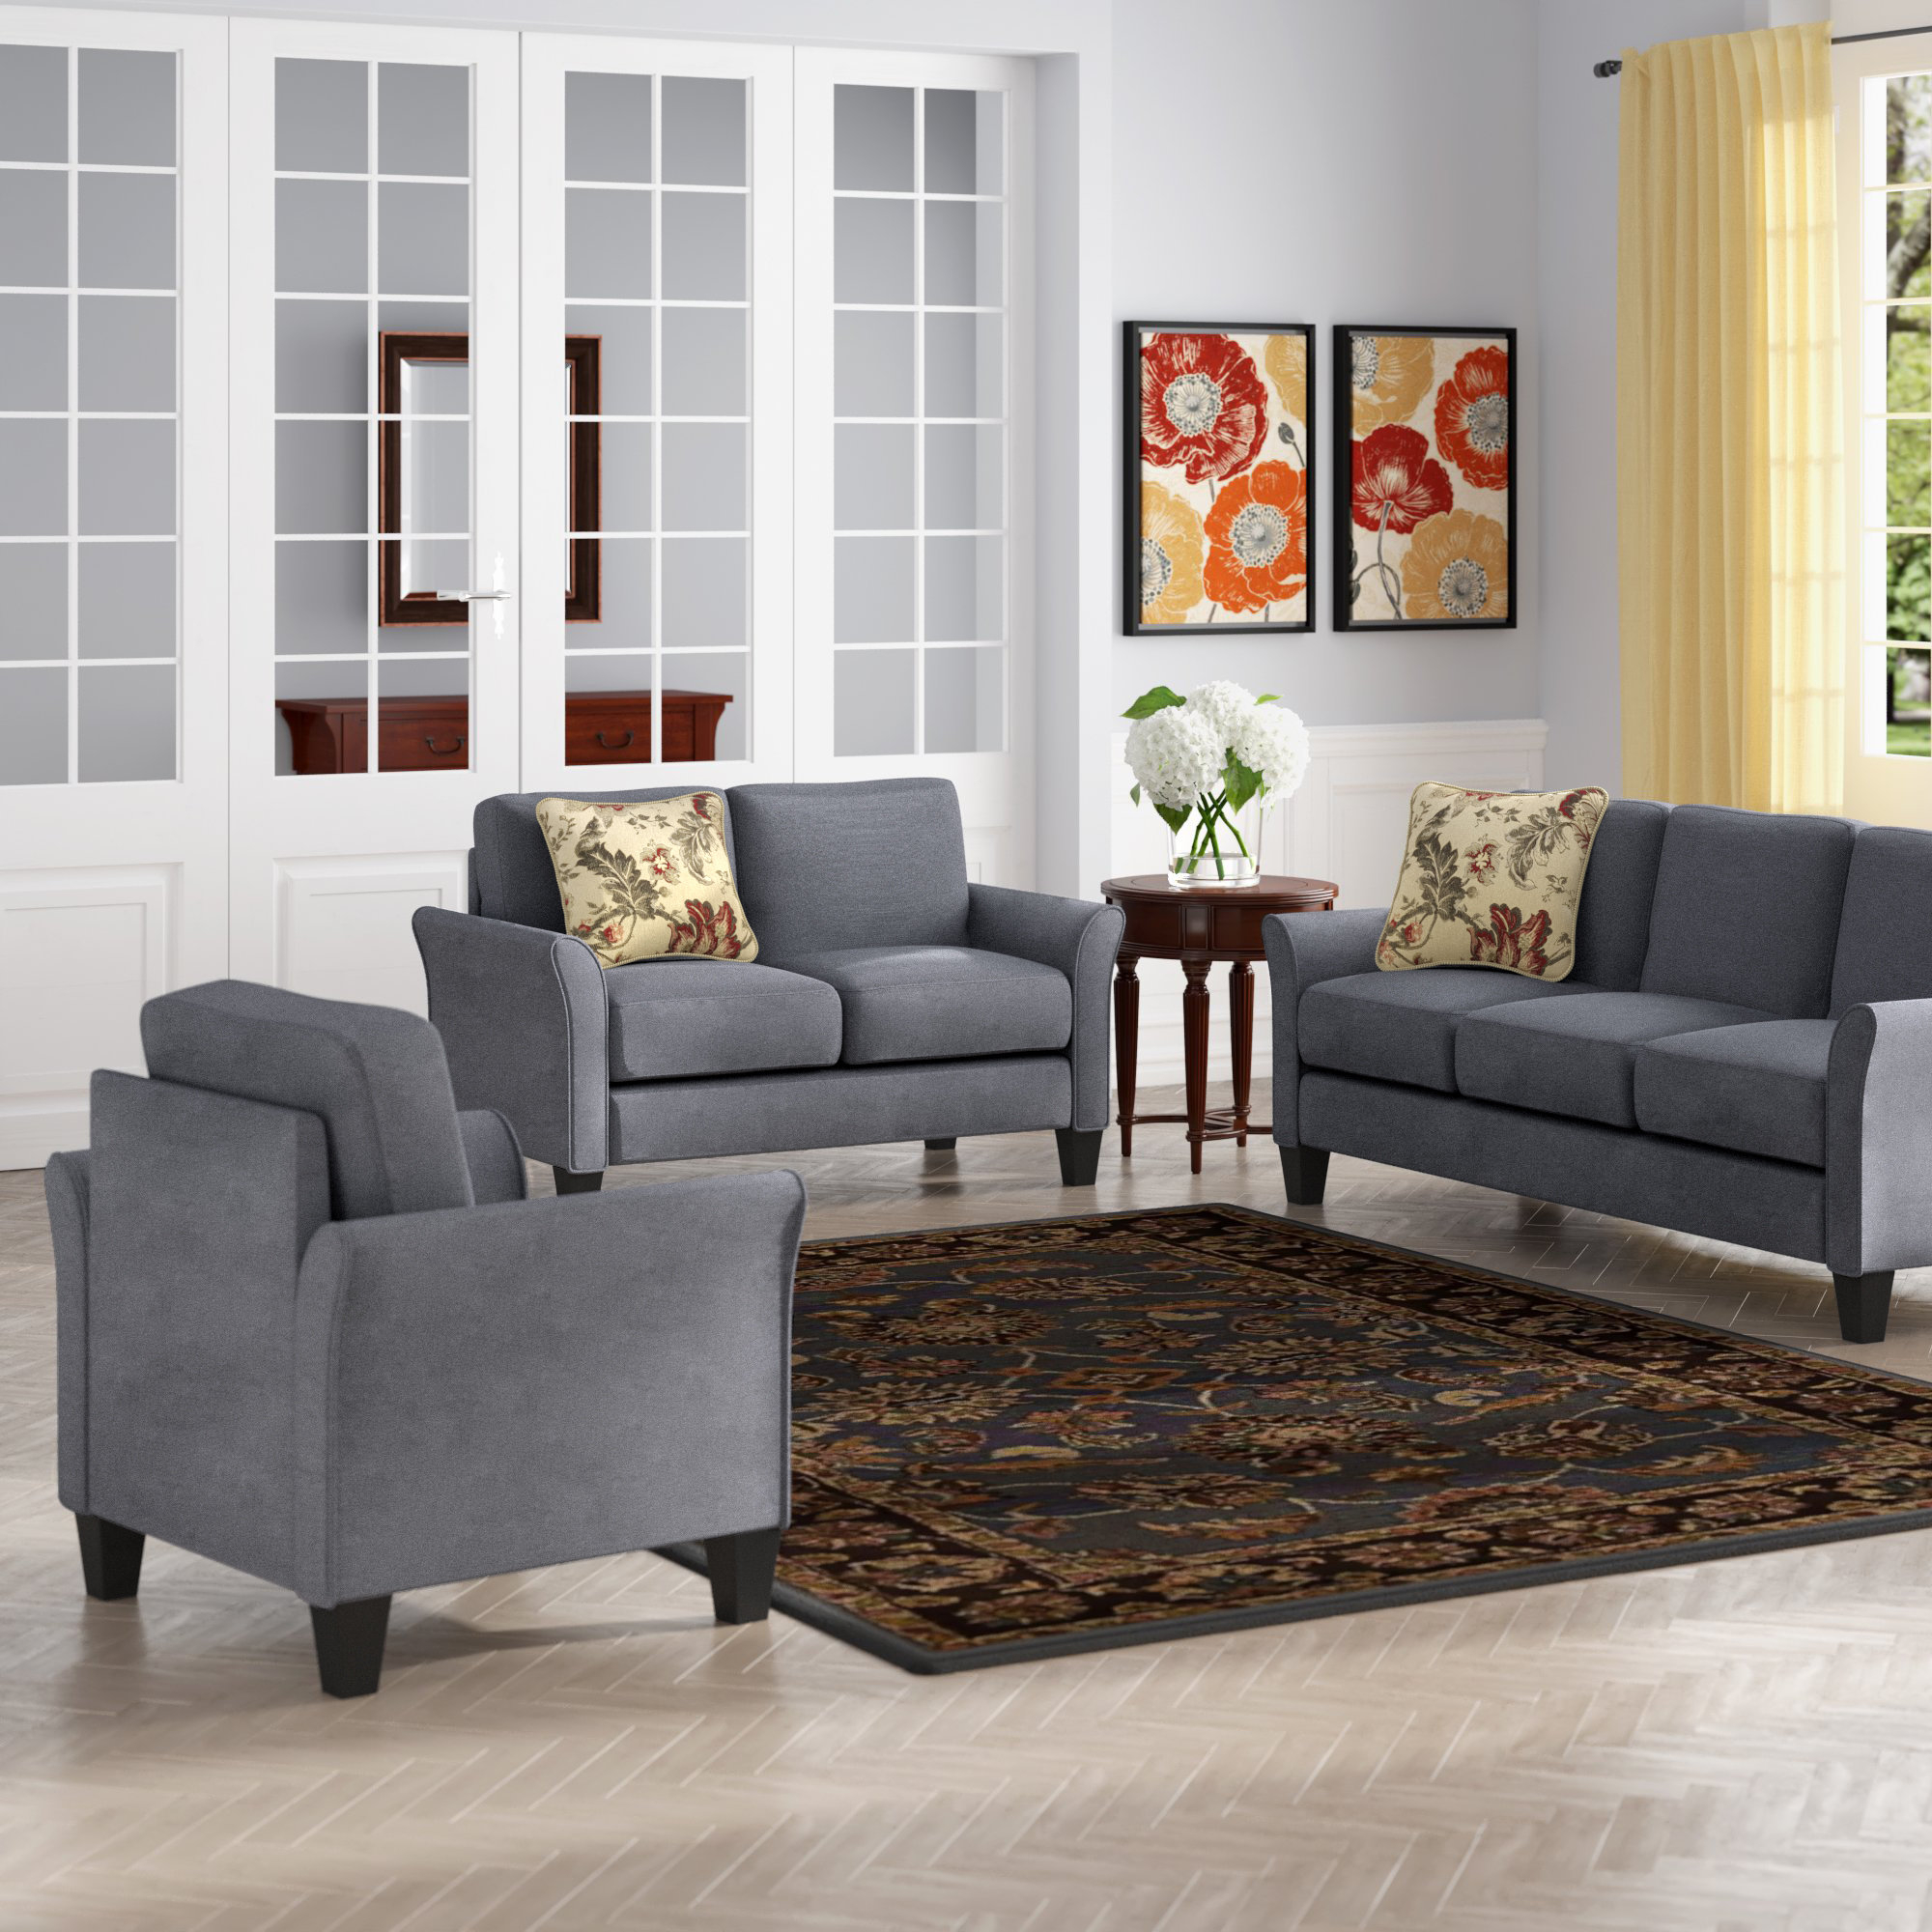 Goldnilla 3 Piece Living Room Set intended for 11 Smart Tricks of How to Craft Deals On Living Room Sets